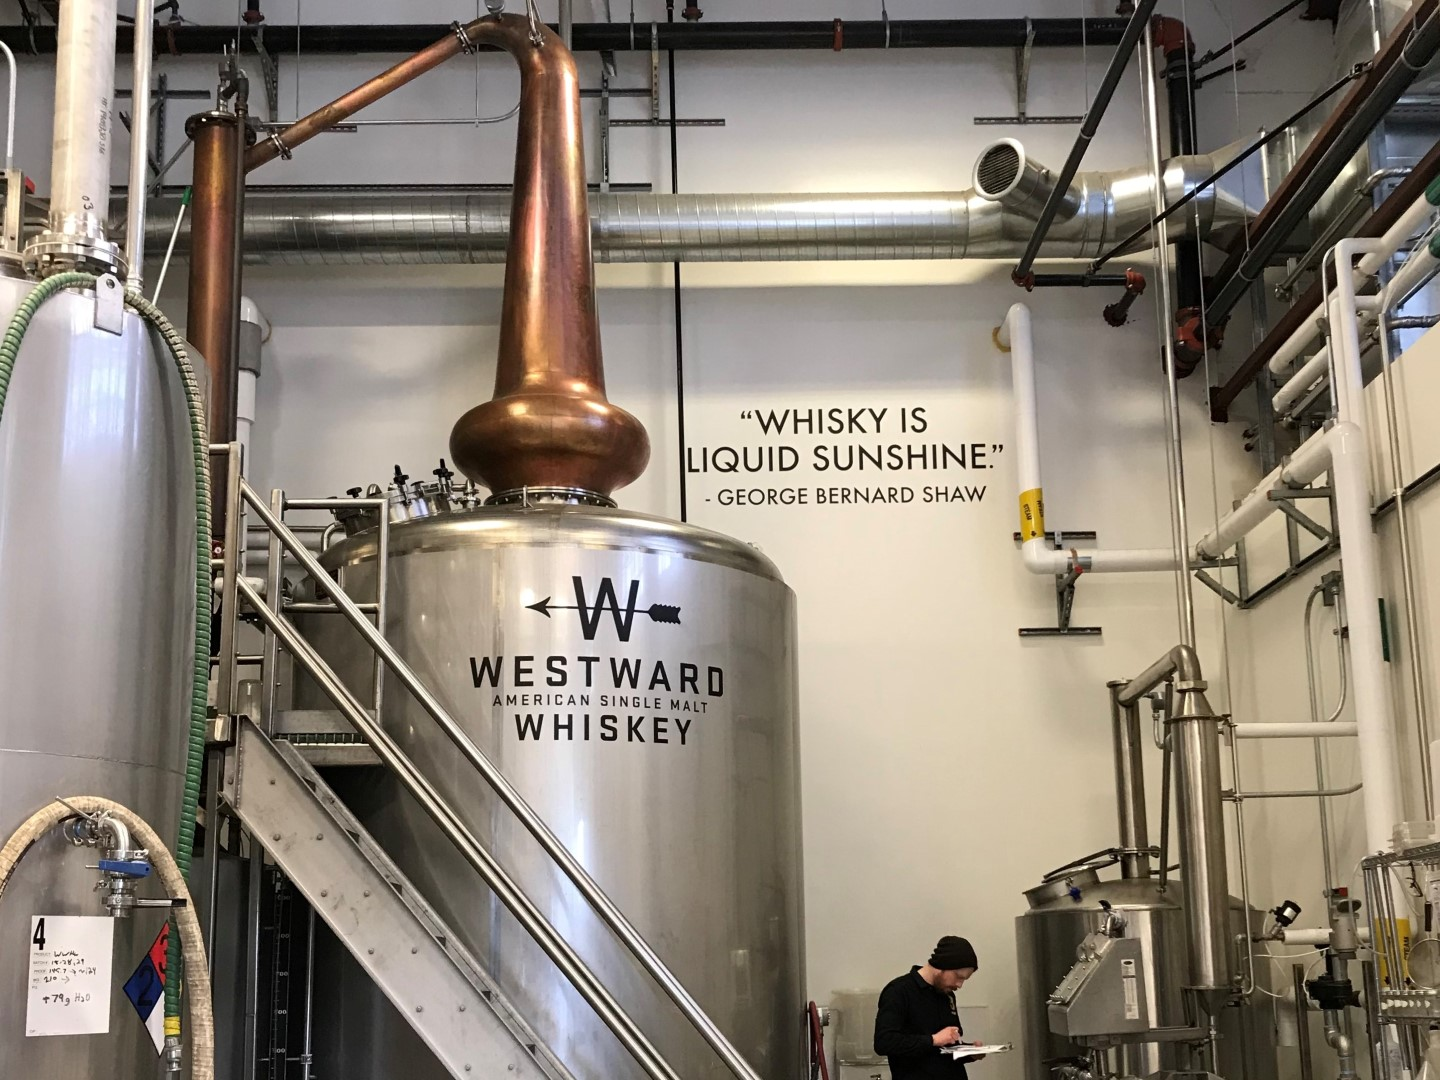 House Spirits distillery tour